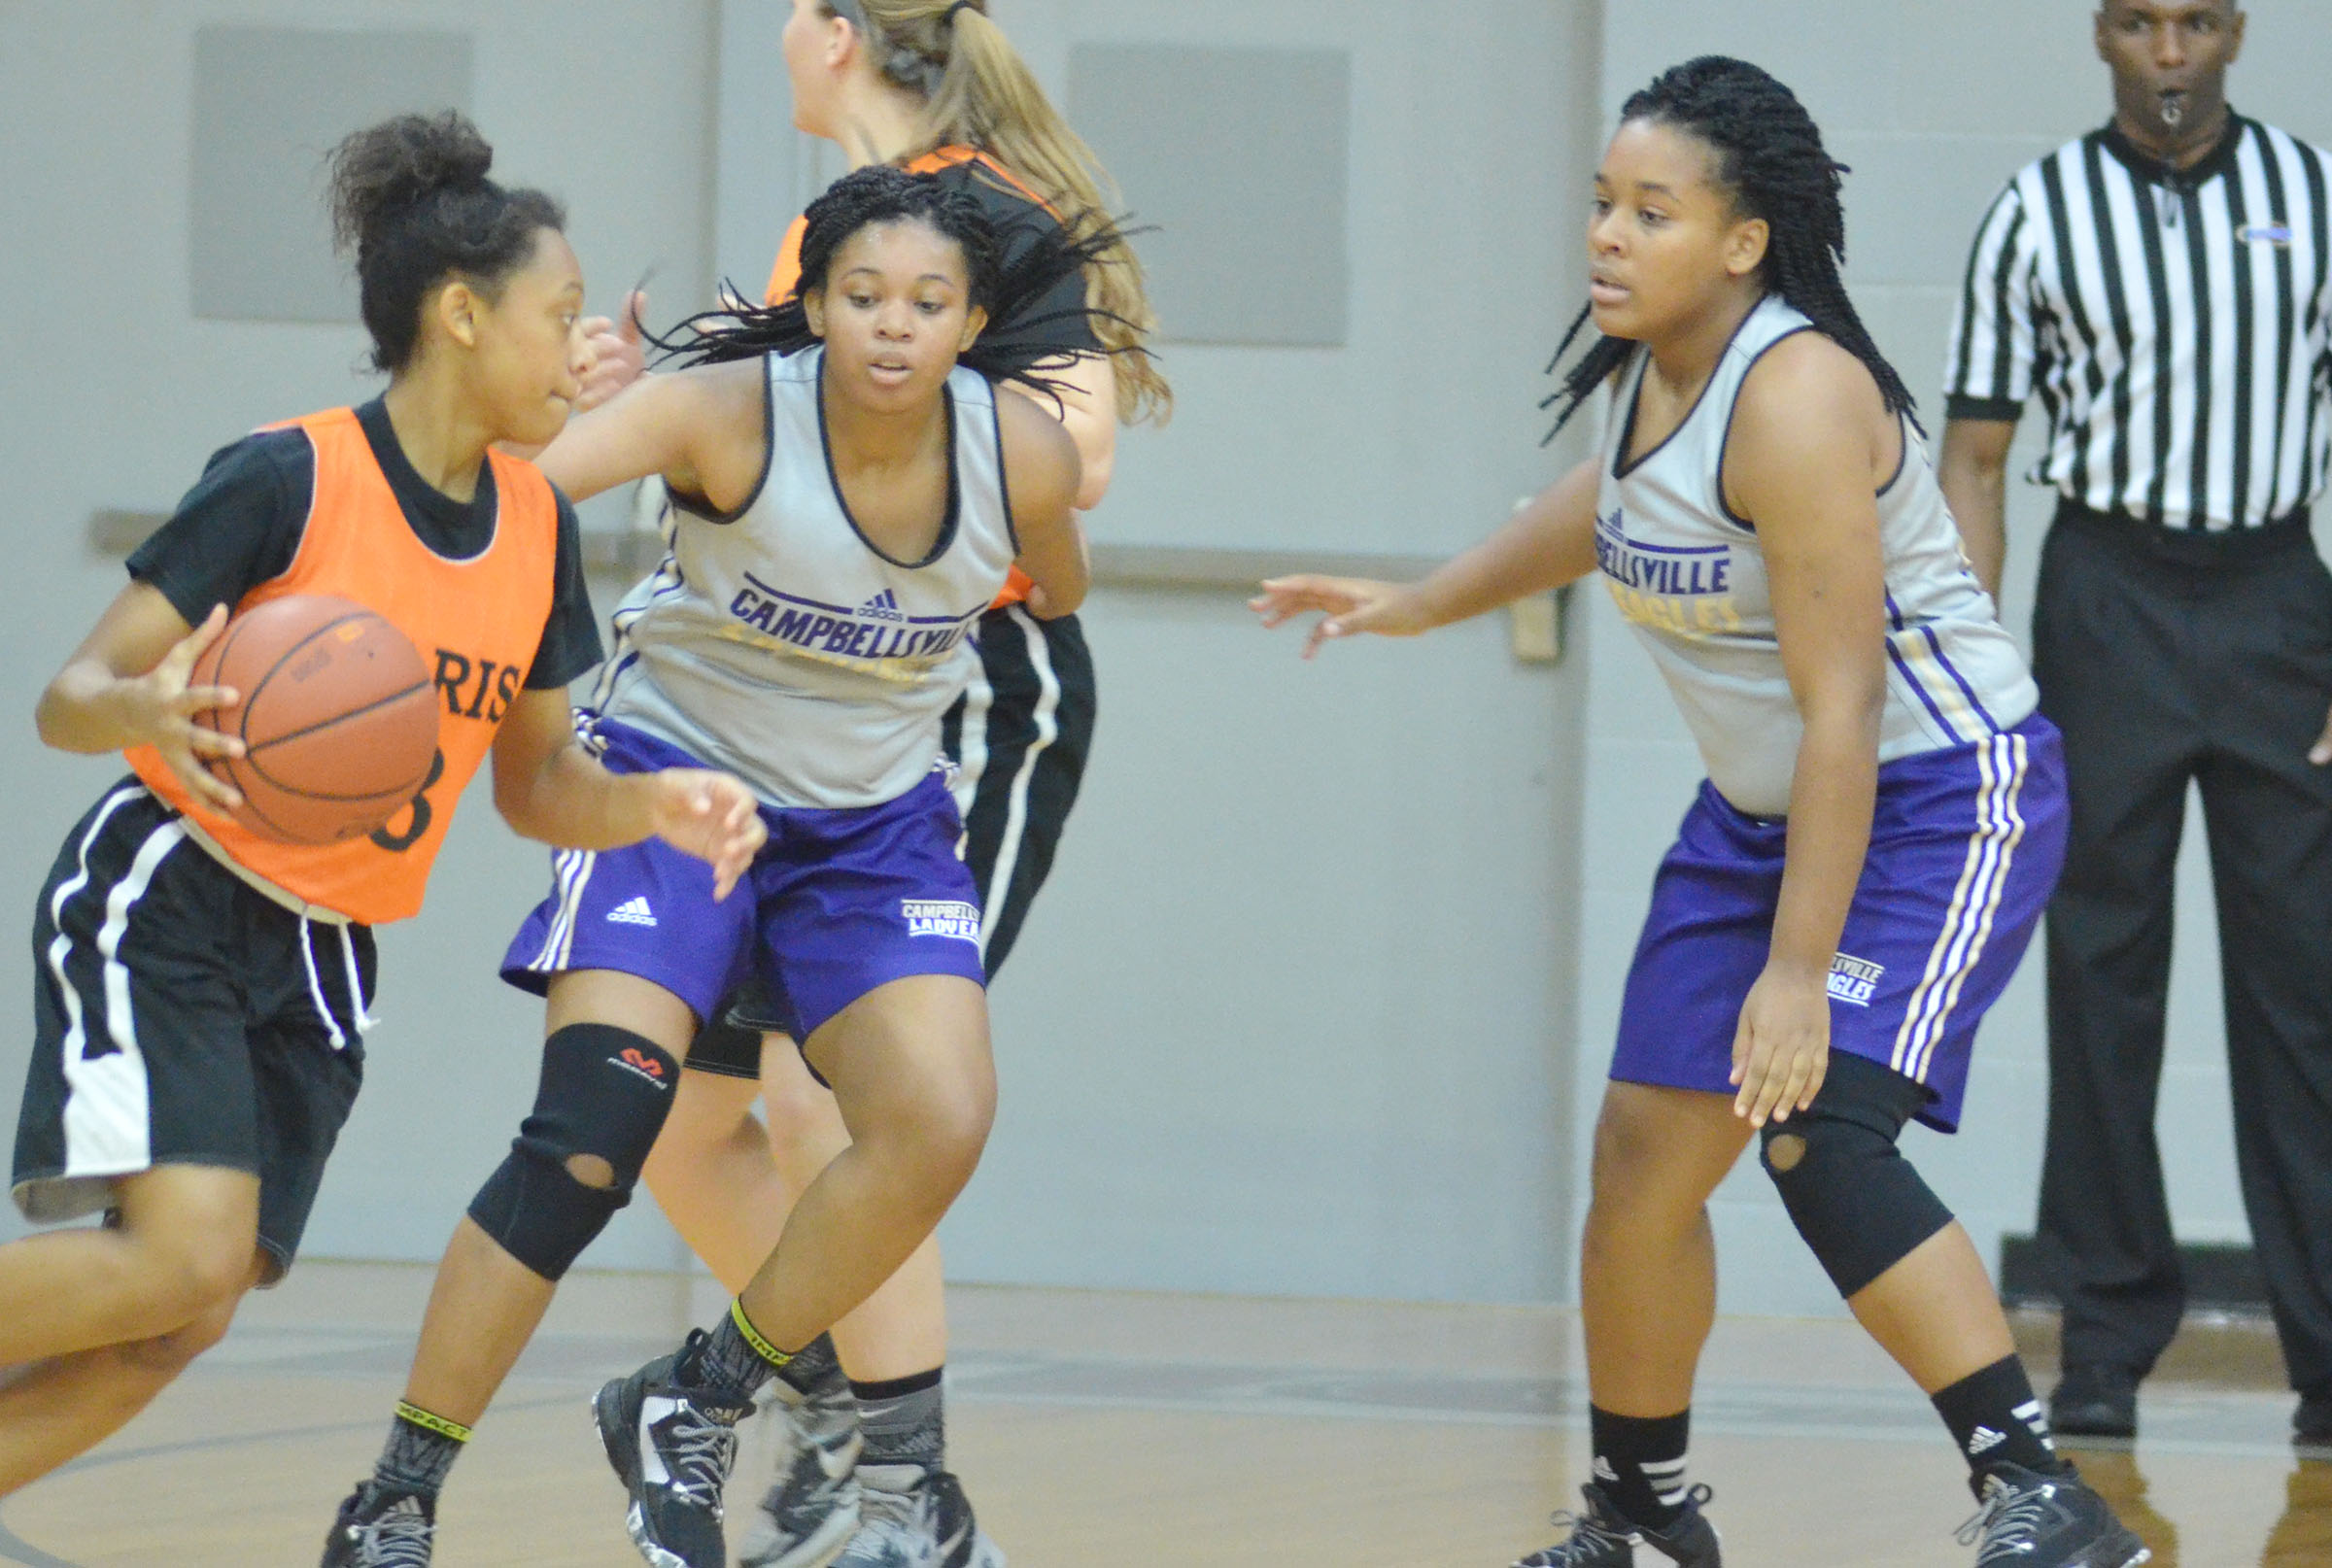 CHS juniors Vonnea Smith, at left, and Kayla Young play defense.